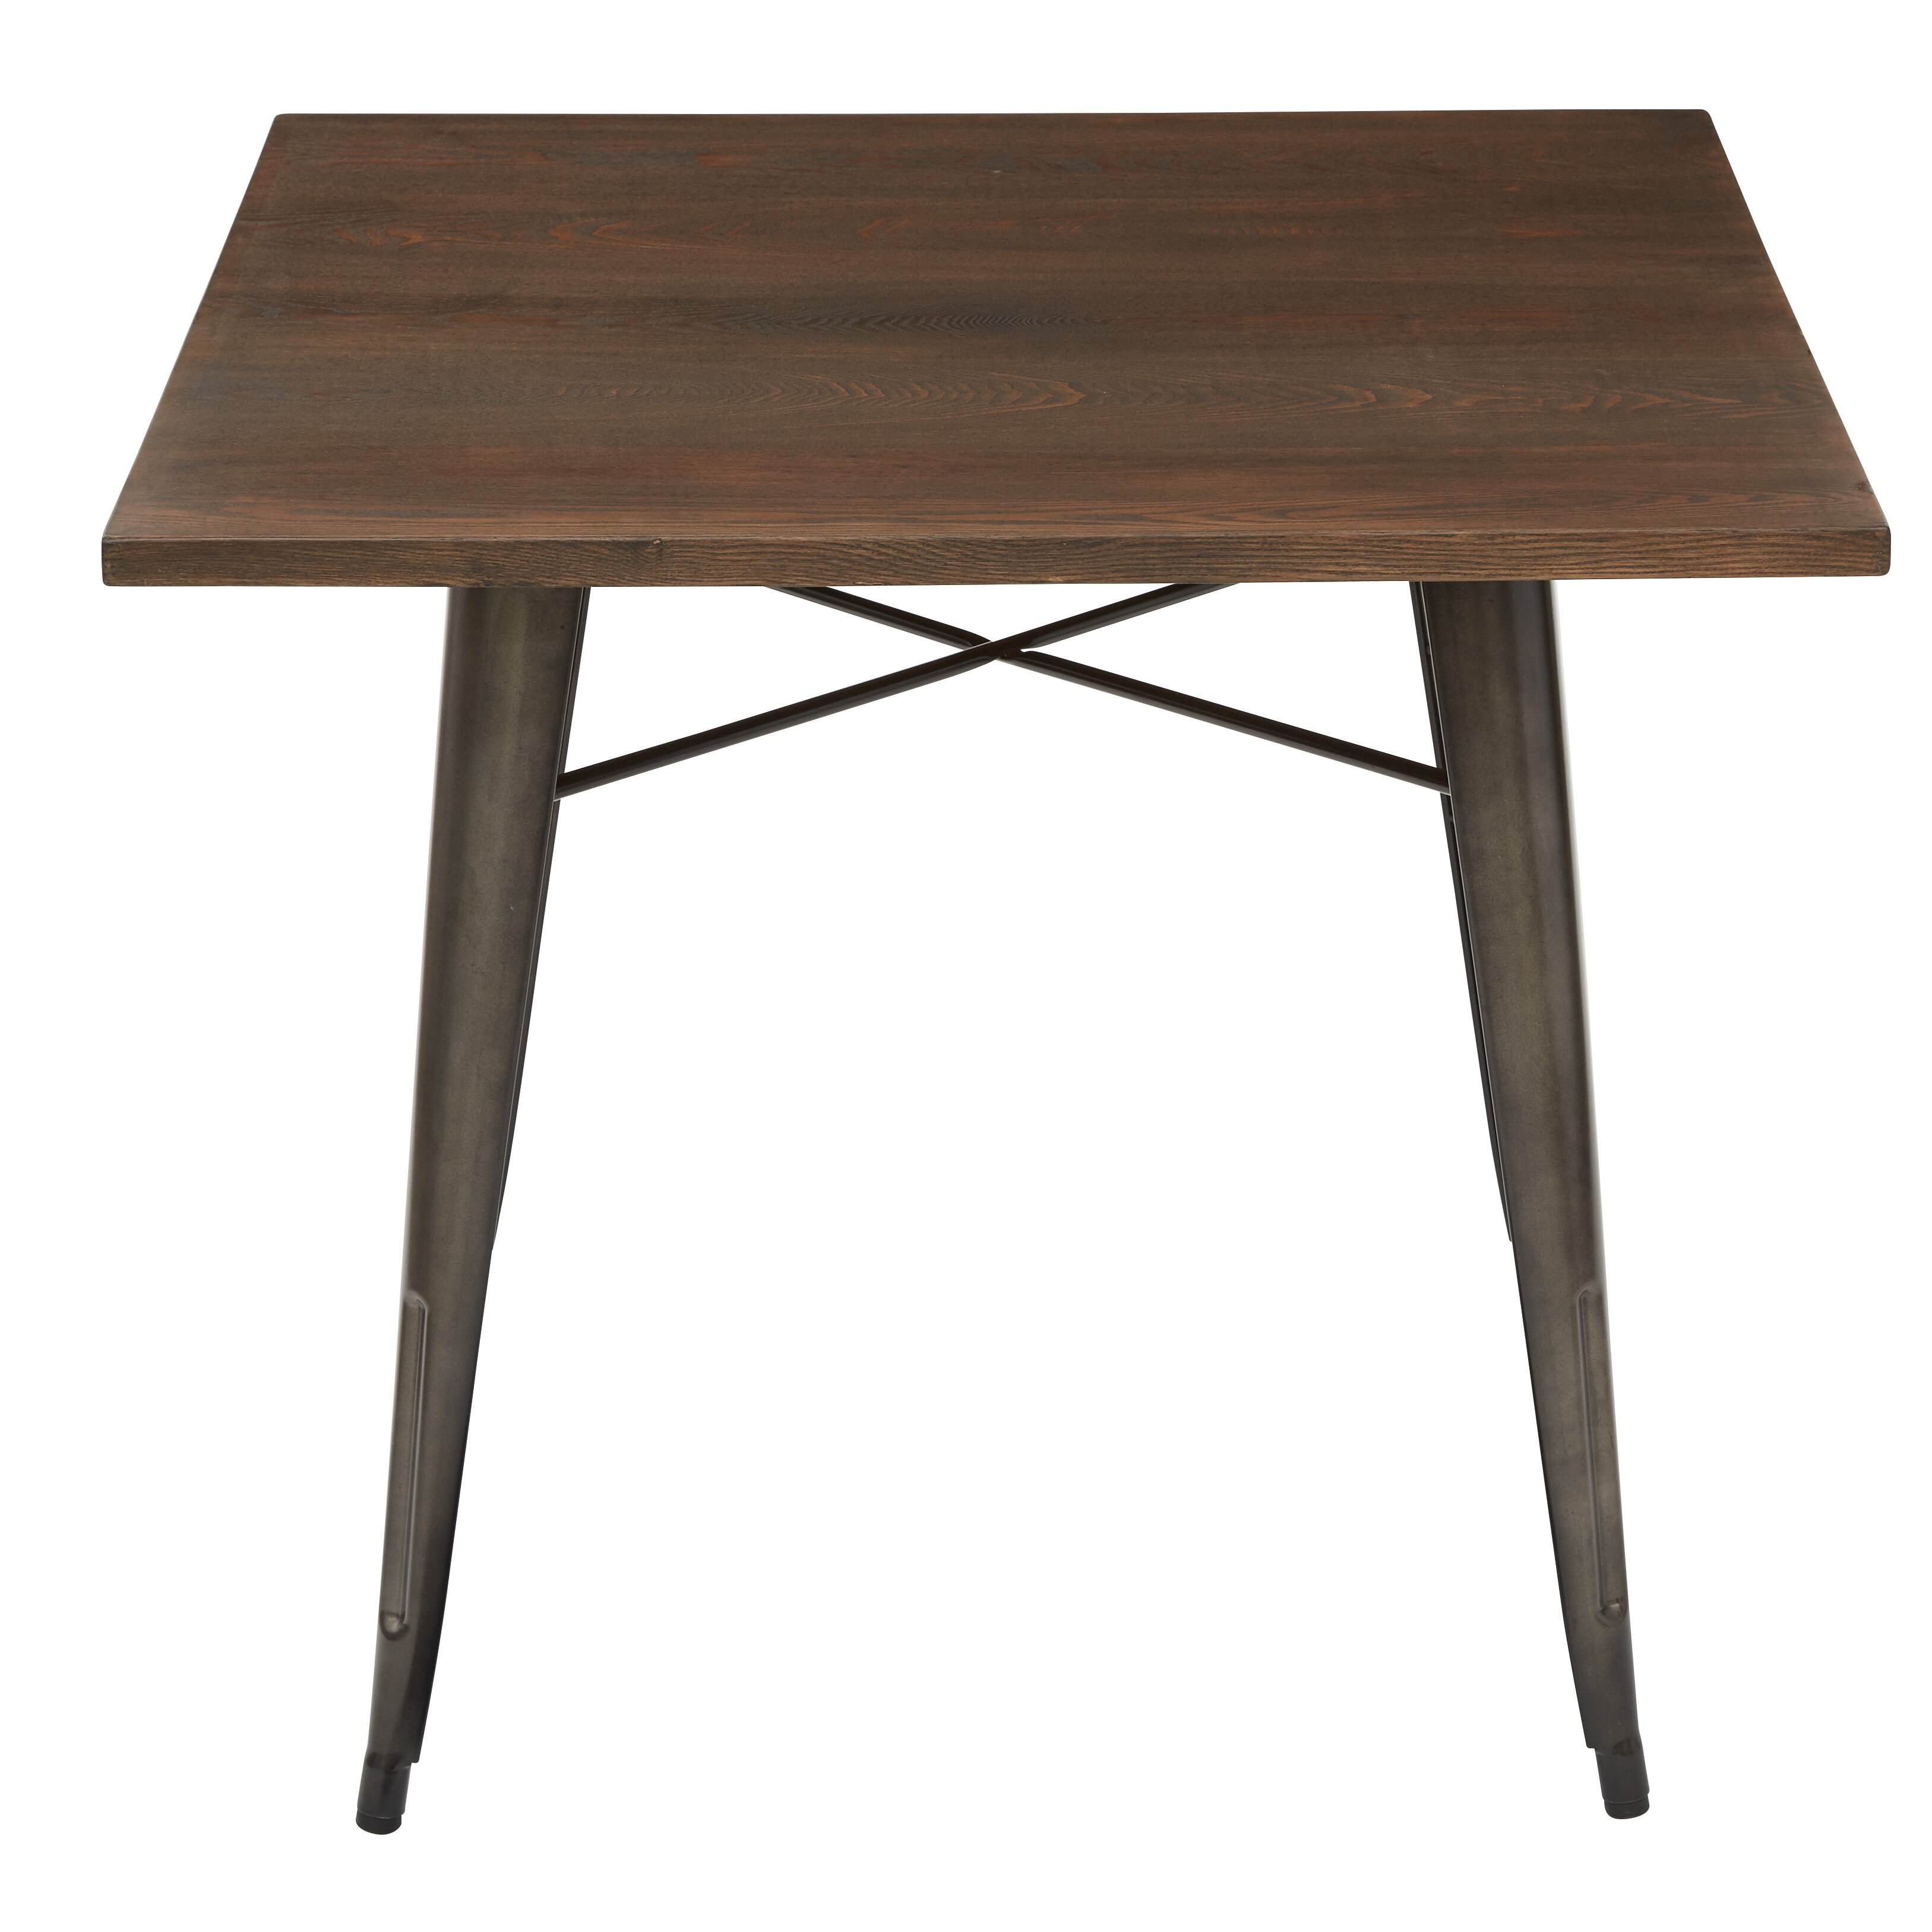 OSP Designs Indio Dining Table amp Reviews Wayfair : Indio Metal Dining Table Matte Gunmetal Frame Finish with Vintage Ash Walnut Finish Table Top IND432 C209 1 from www.wayfair.com size 3253 x 3253 jpeg 709kB